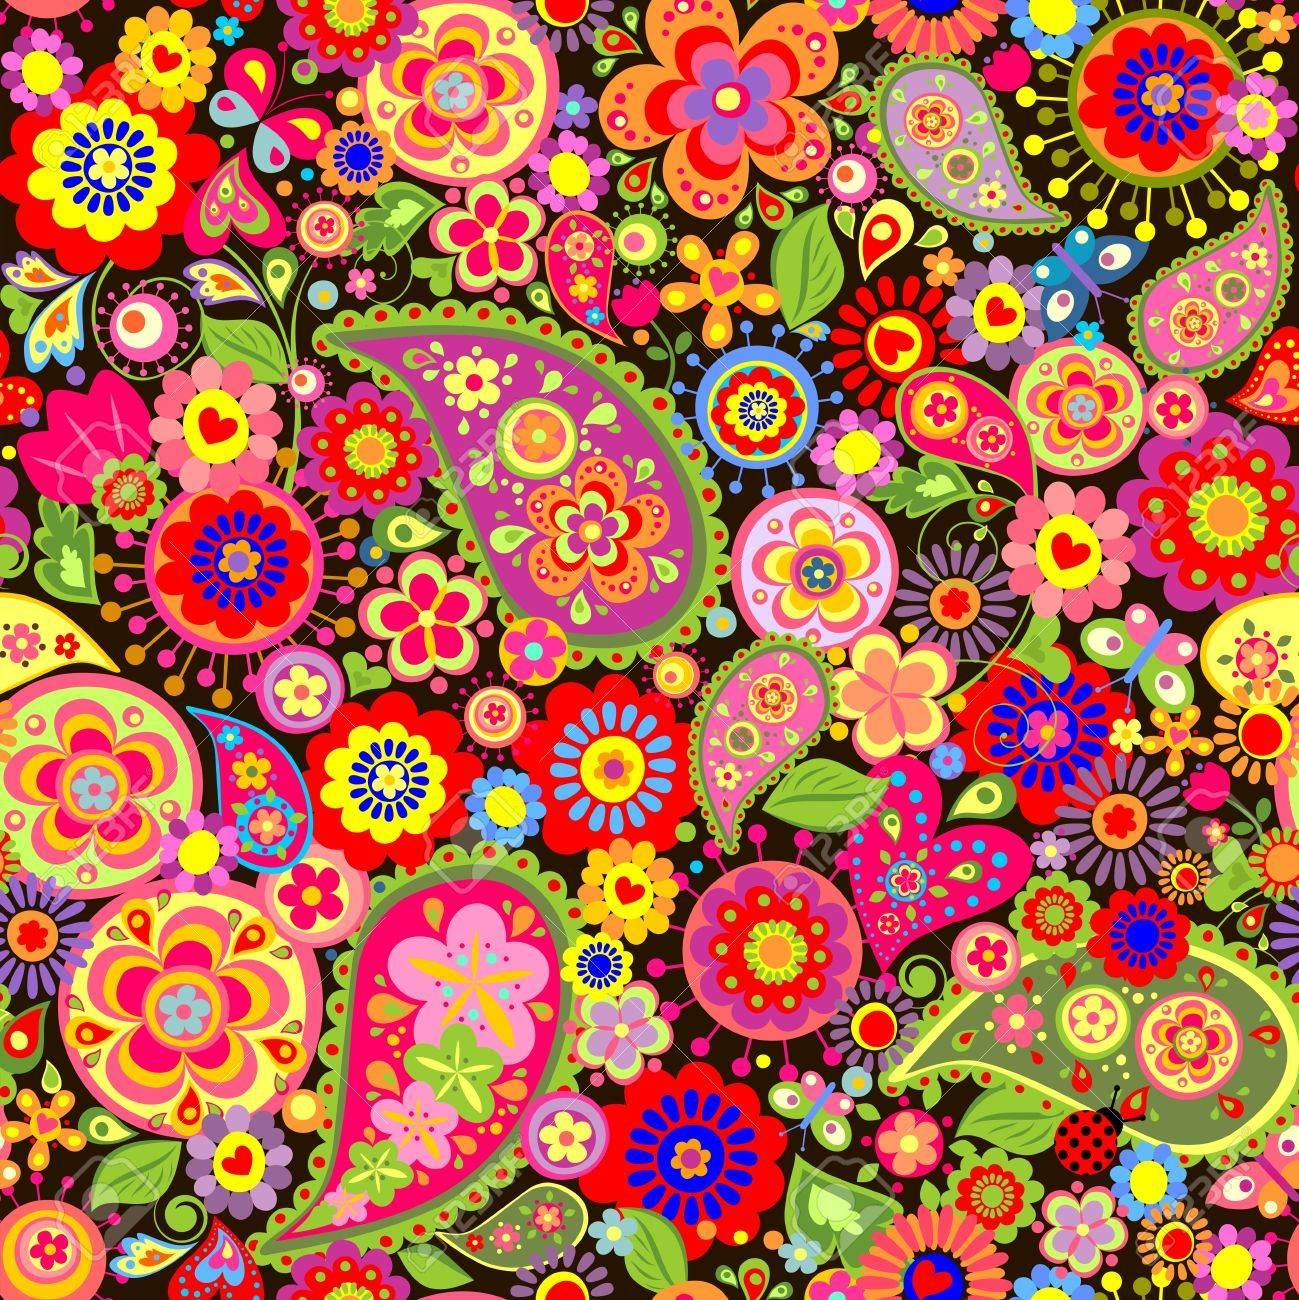 Spring Colorful Floral Wallpaper With Mankolam Royalty Free